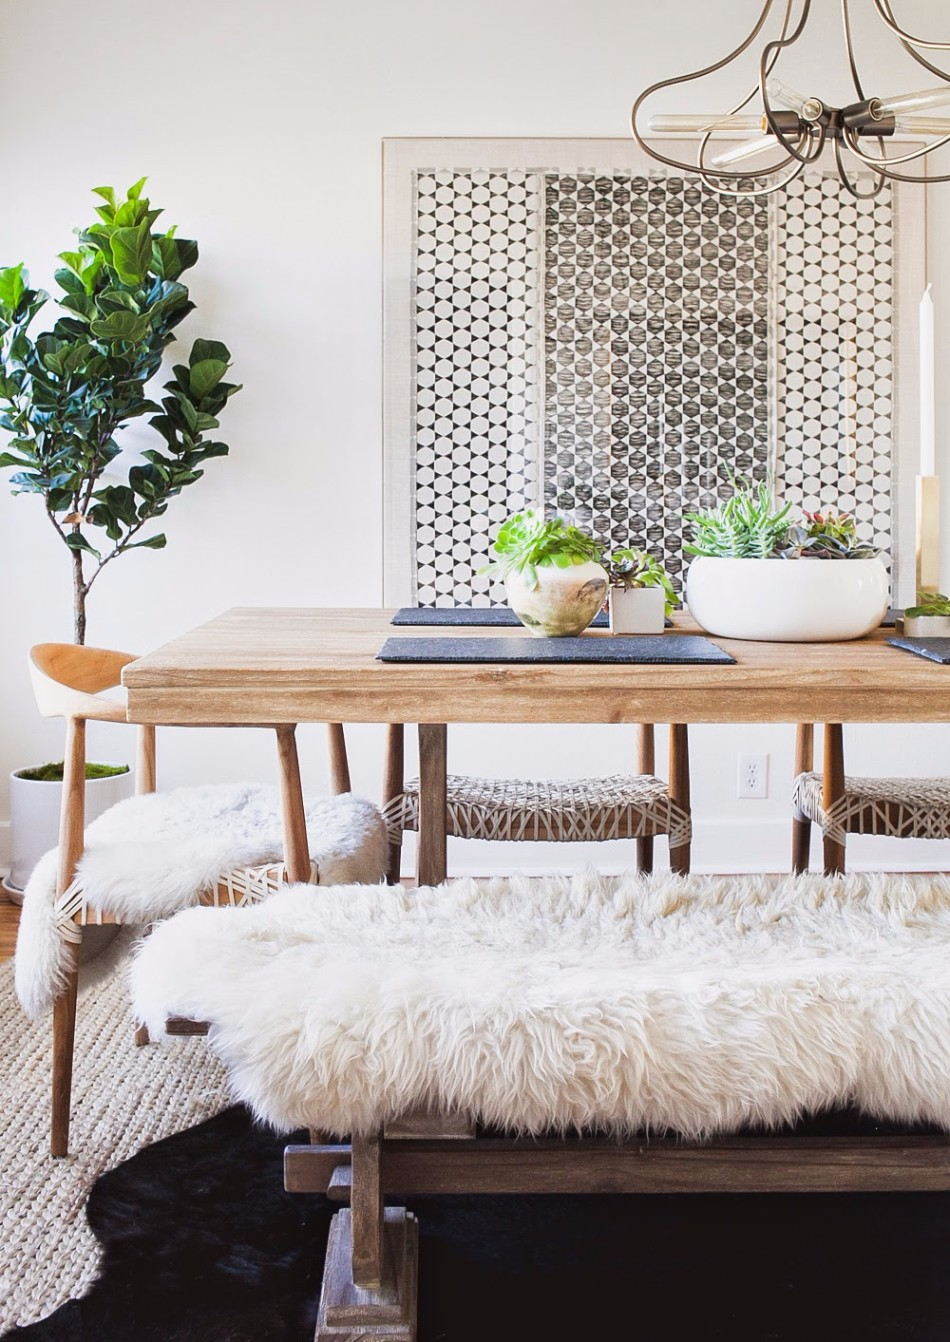 Top 10 Dining Room Decor Trends for 2018 | www.bocadolobo.com #moderndiningrooms #diningroom #diningtables #tables #trends #2018trends @moderndiningtables dining room decor Top 10 Dining Room Decor Trends for 2018 Top 10 Dining Room Decor Trends for 2018 9